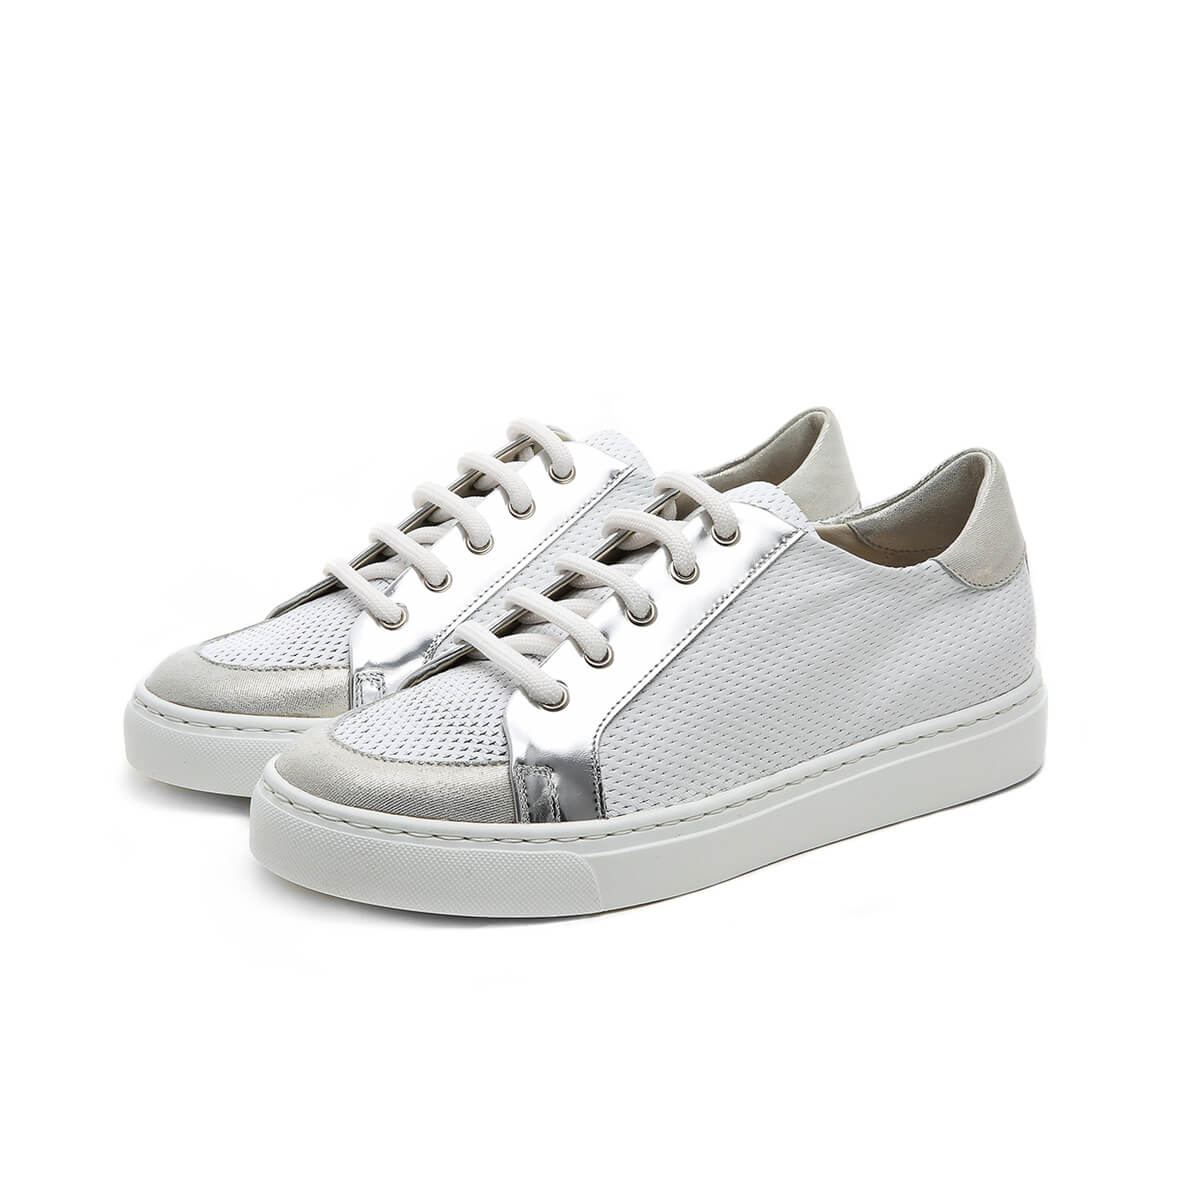 Platform perforated Sneaker white silver